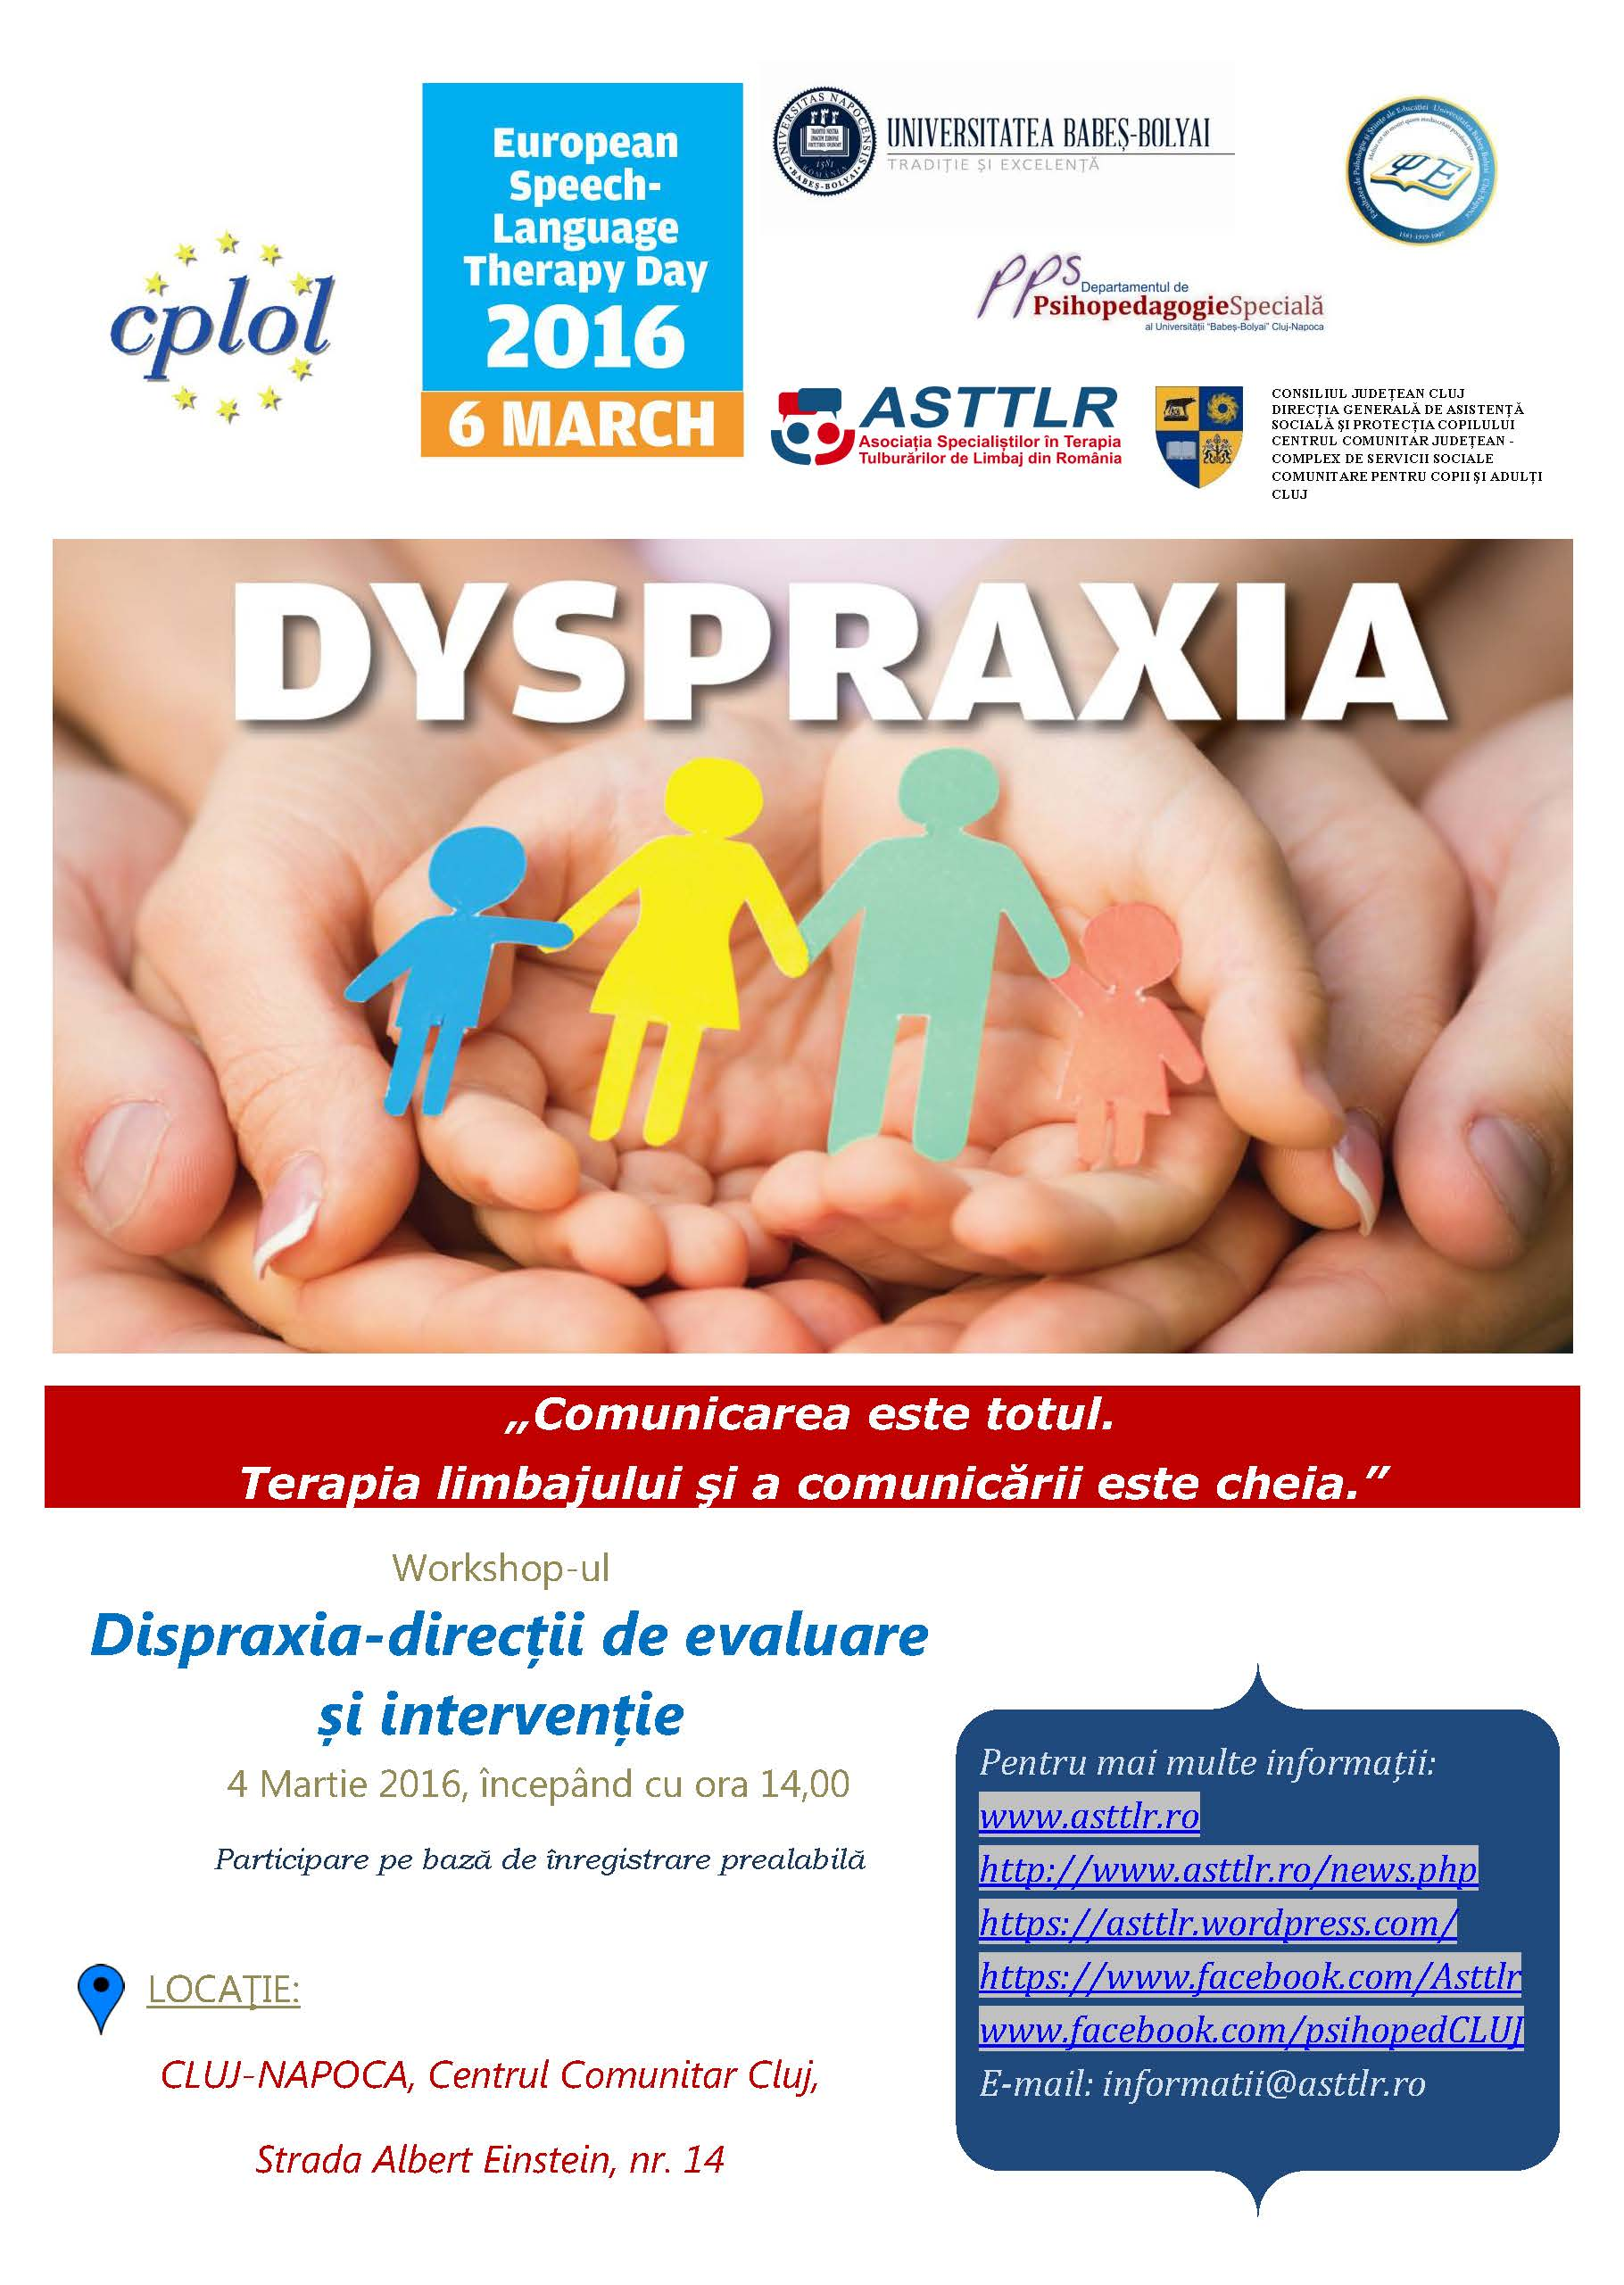 afiș European Speech Language Therapy Day - Dispraxia-direcţii de evaluare şi intervenţie